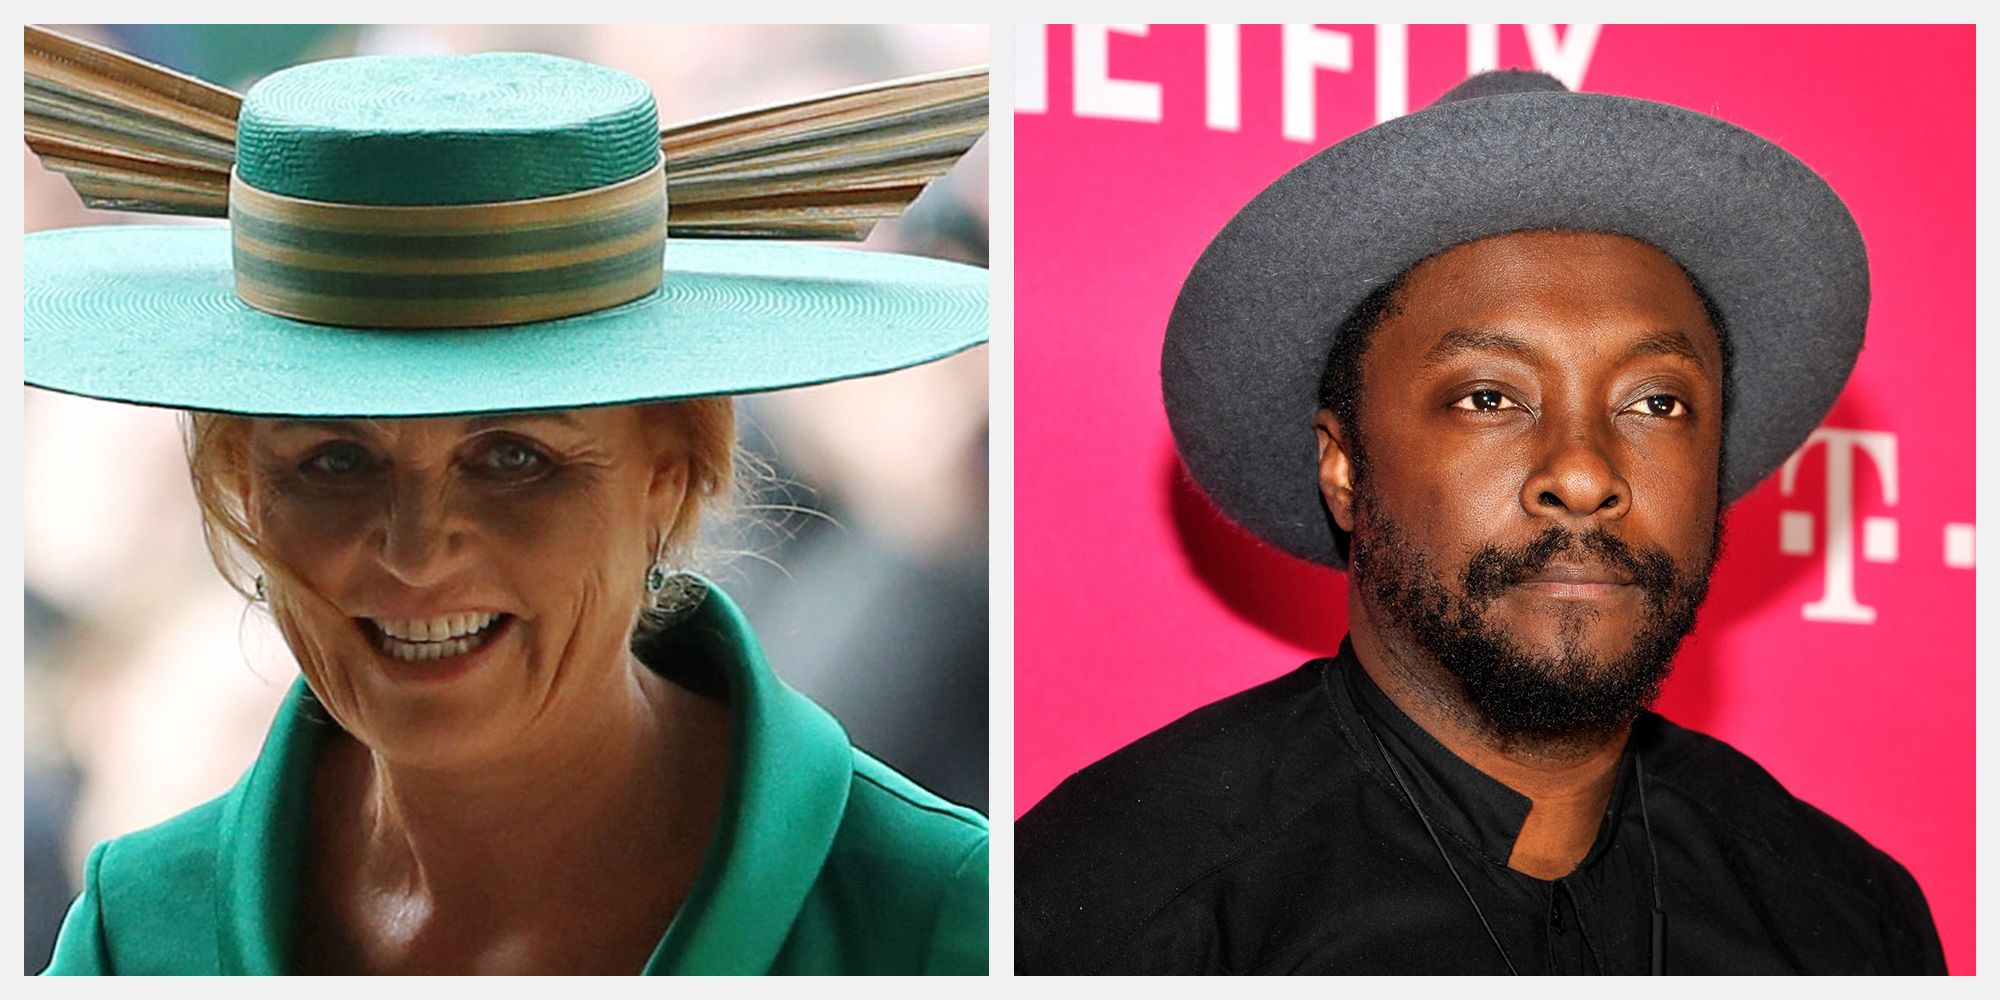 Sarah Ferguson and Will.i.am Recorded a Song Together